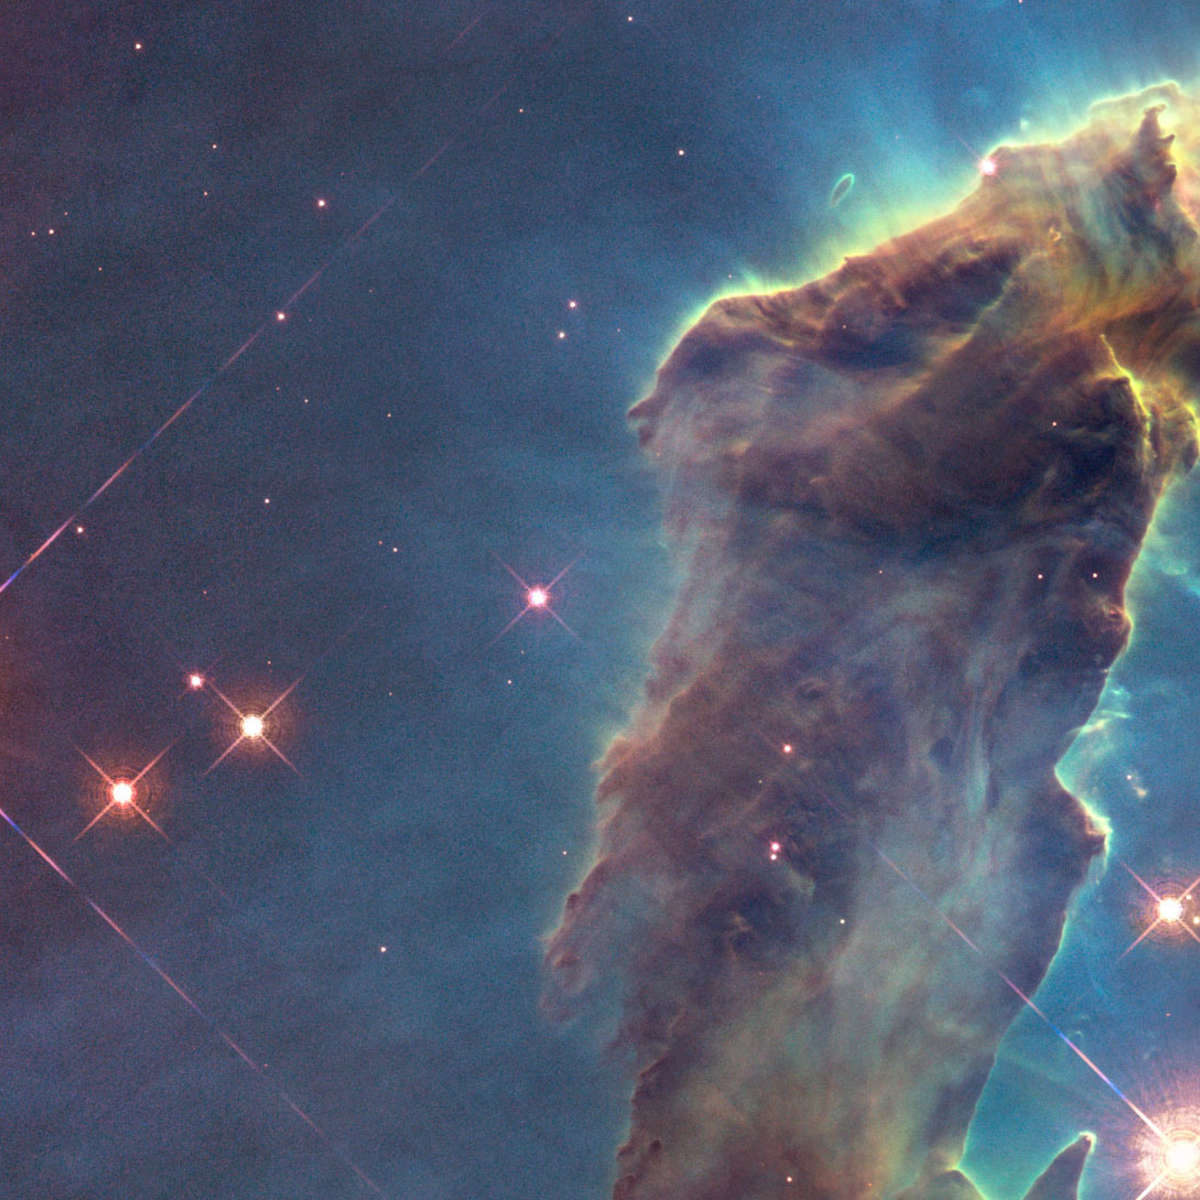 The Pillars of Creation: Towering star-forming clouds of gas and dust in the Eagle Nebula. Credit: NASA, ESA/Hubble and the Hubble Heritage Team (STScI/AURA)